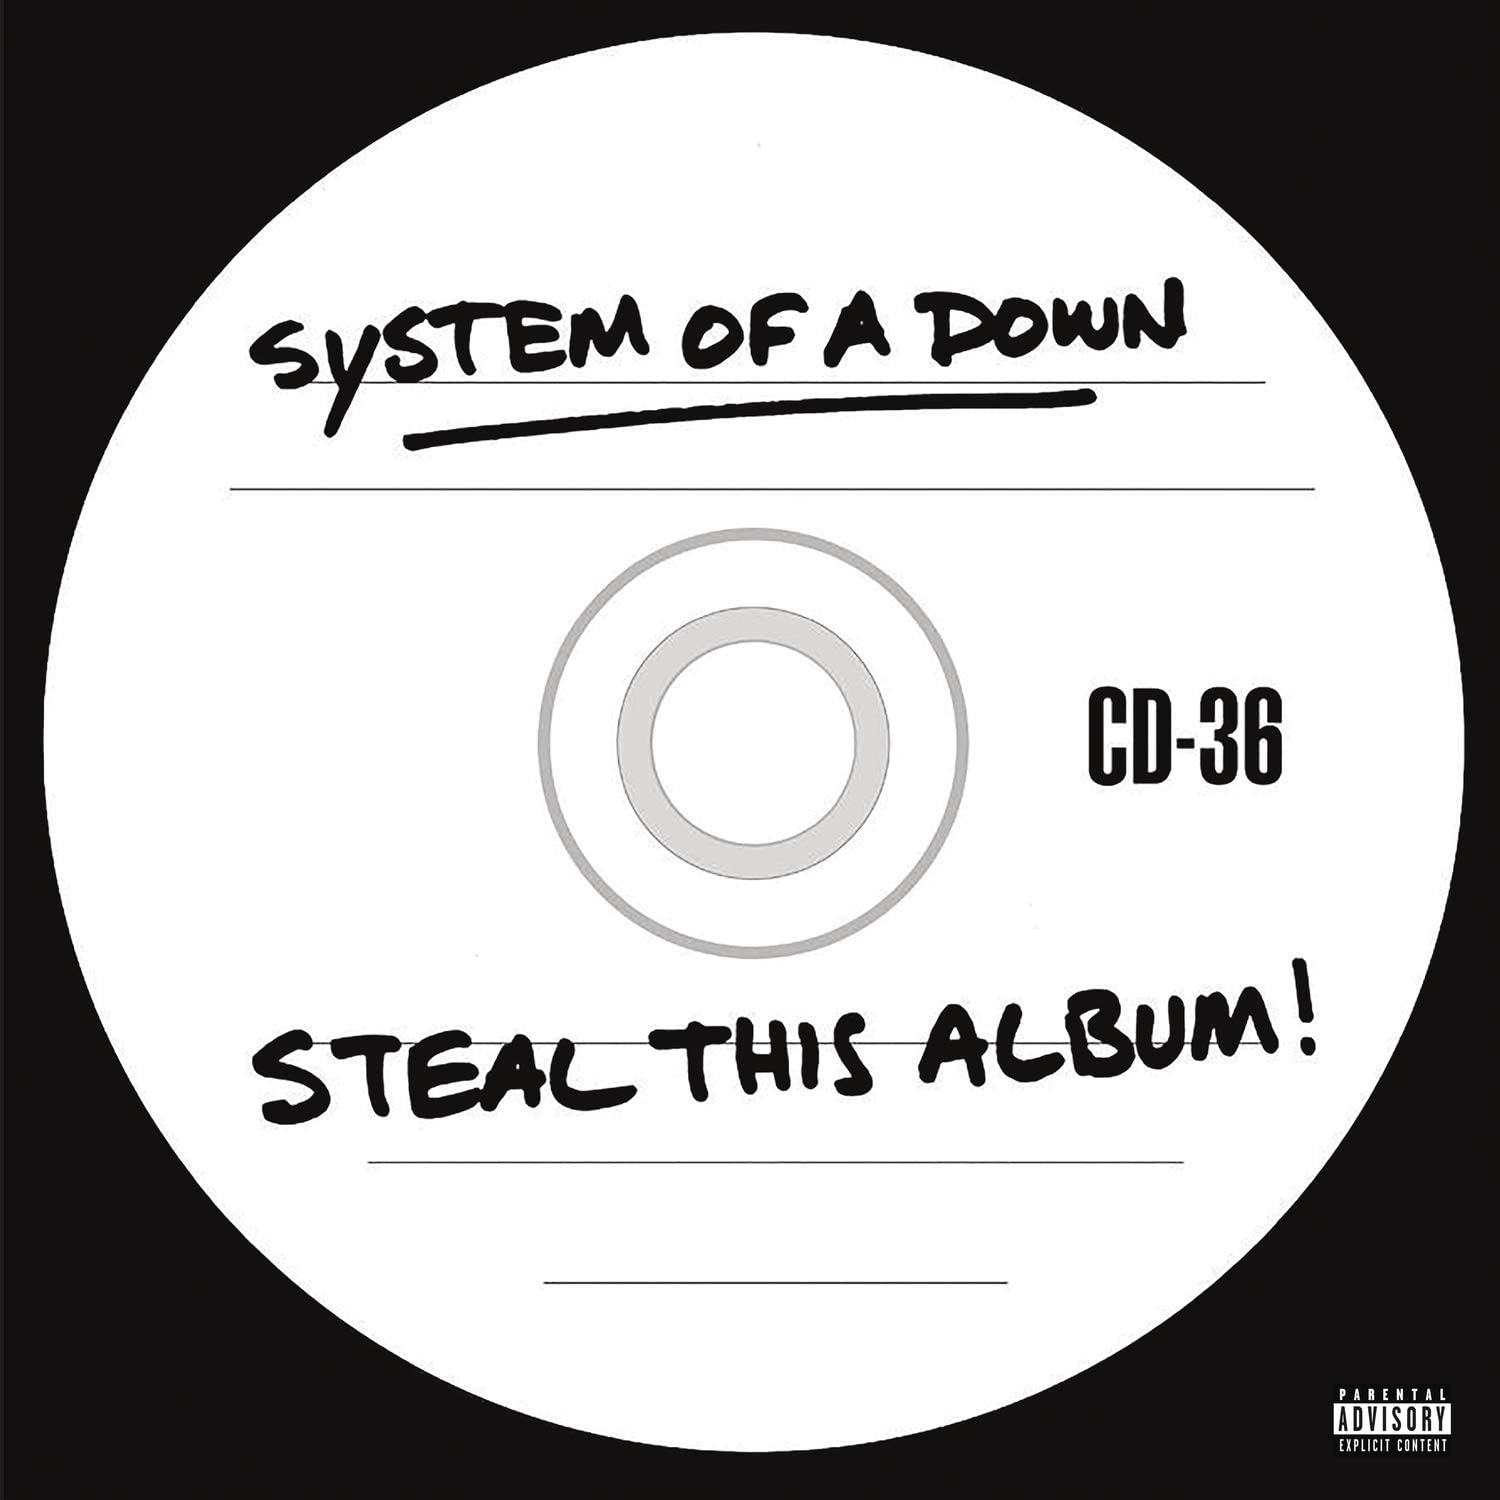 System Of A Down – Steal This Album!